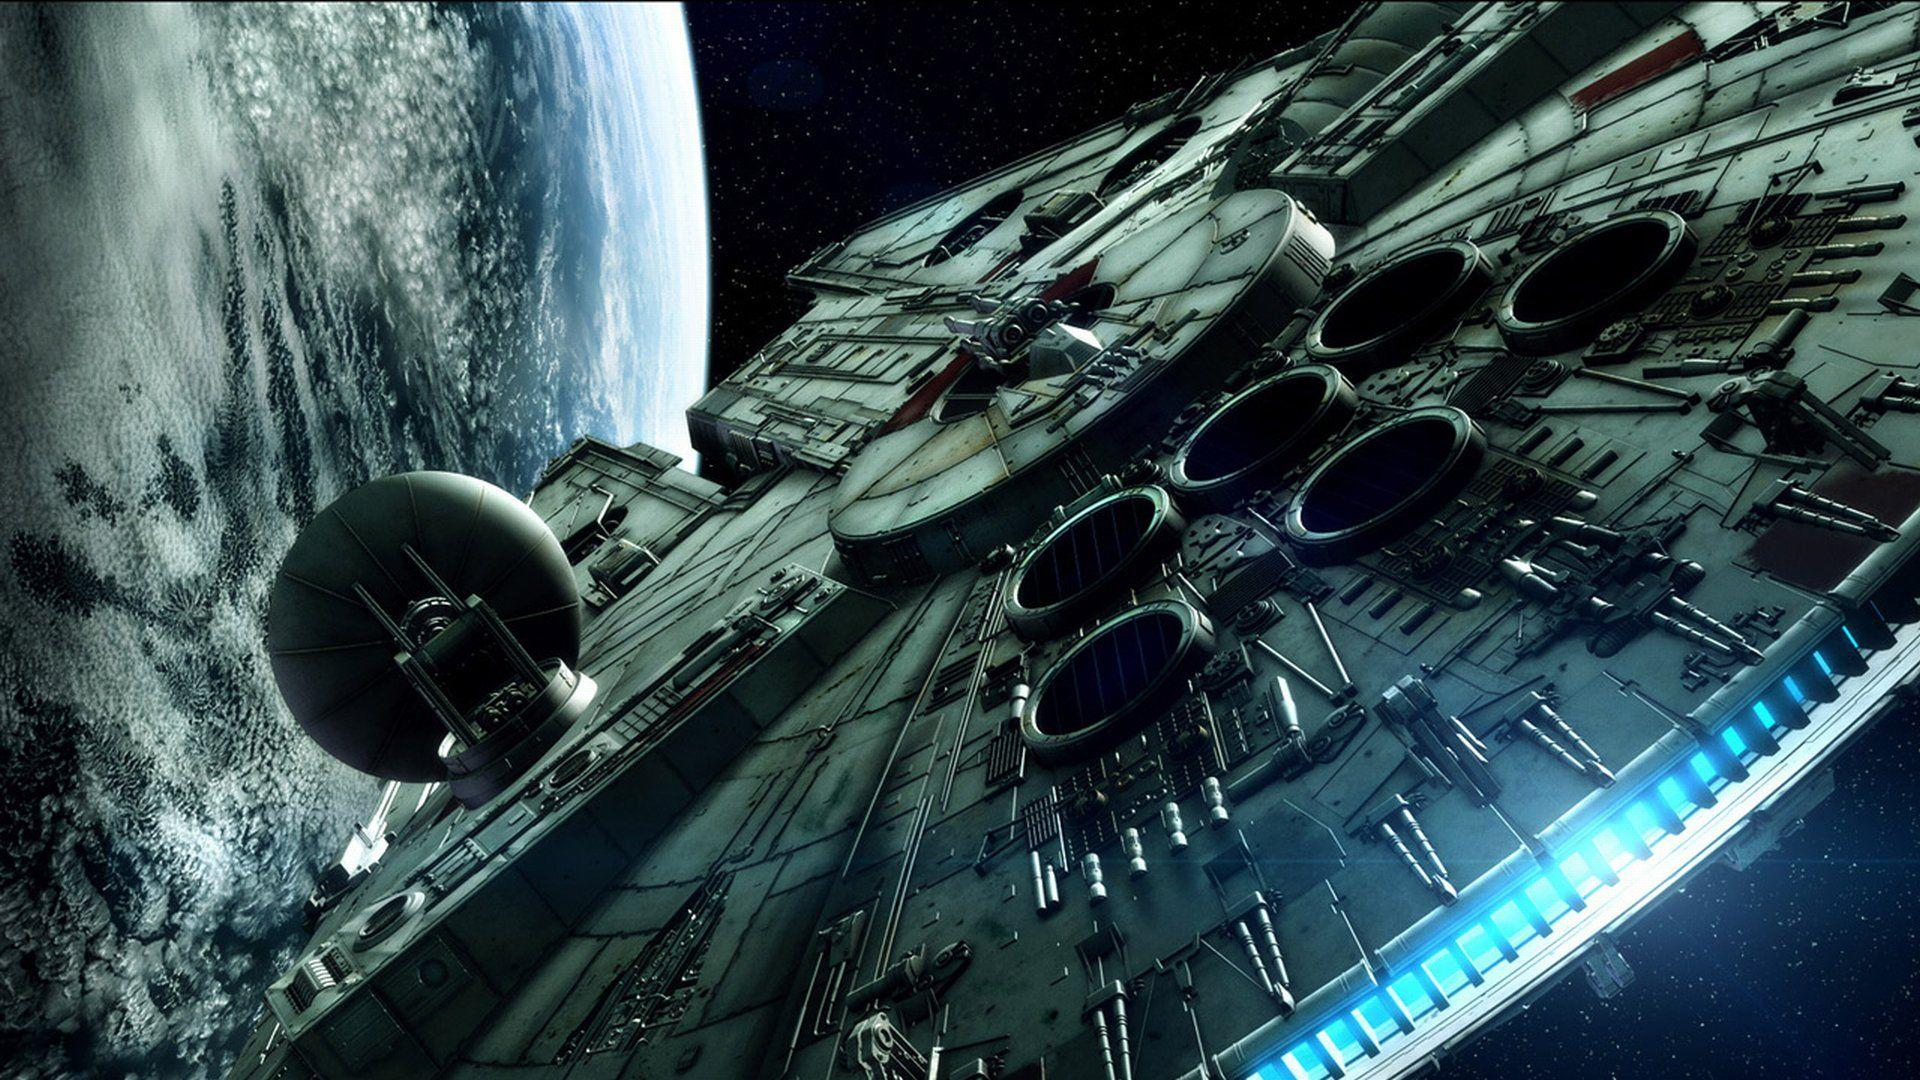 star wars wallpaper high res - photo #6